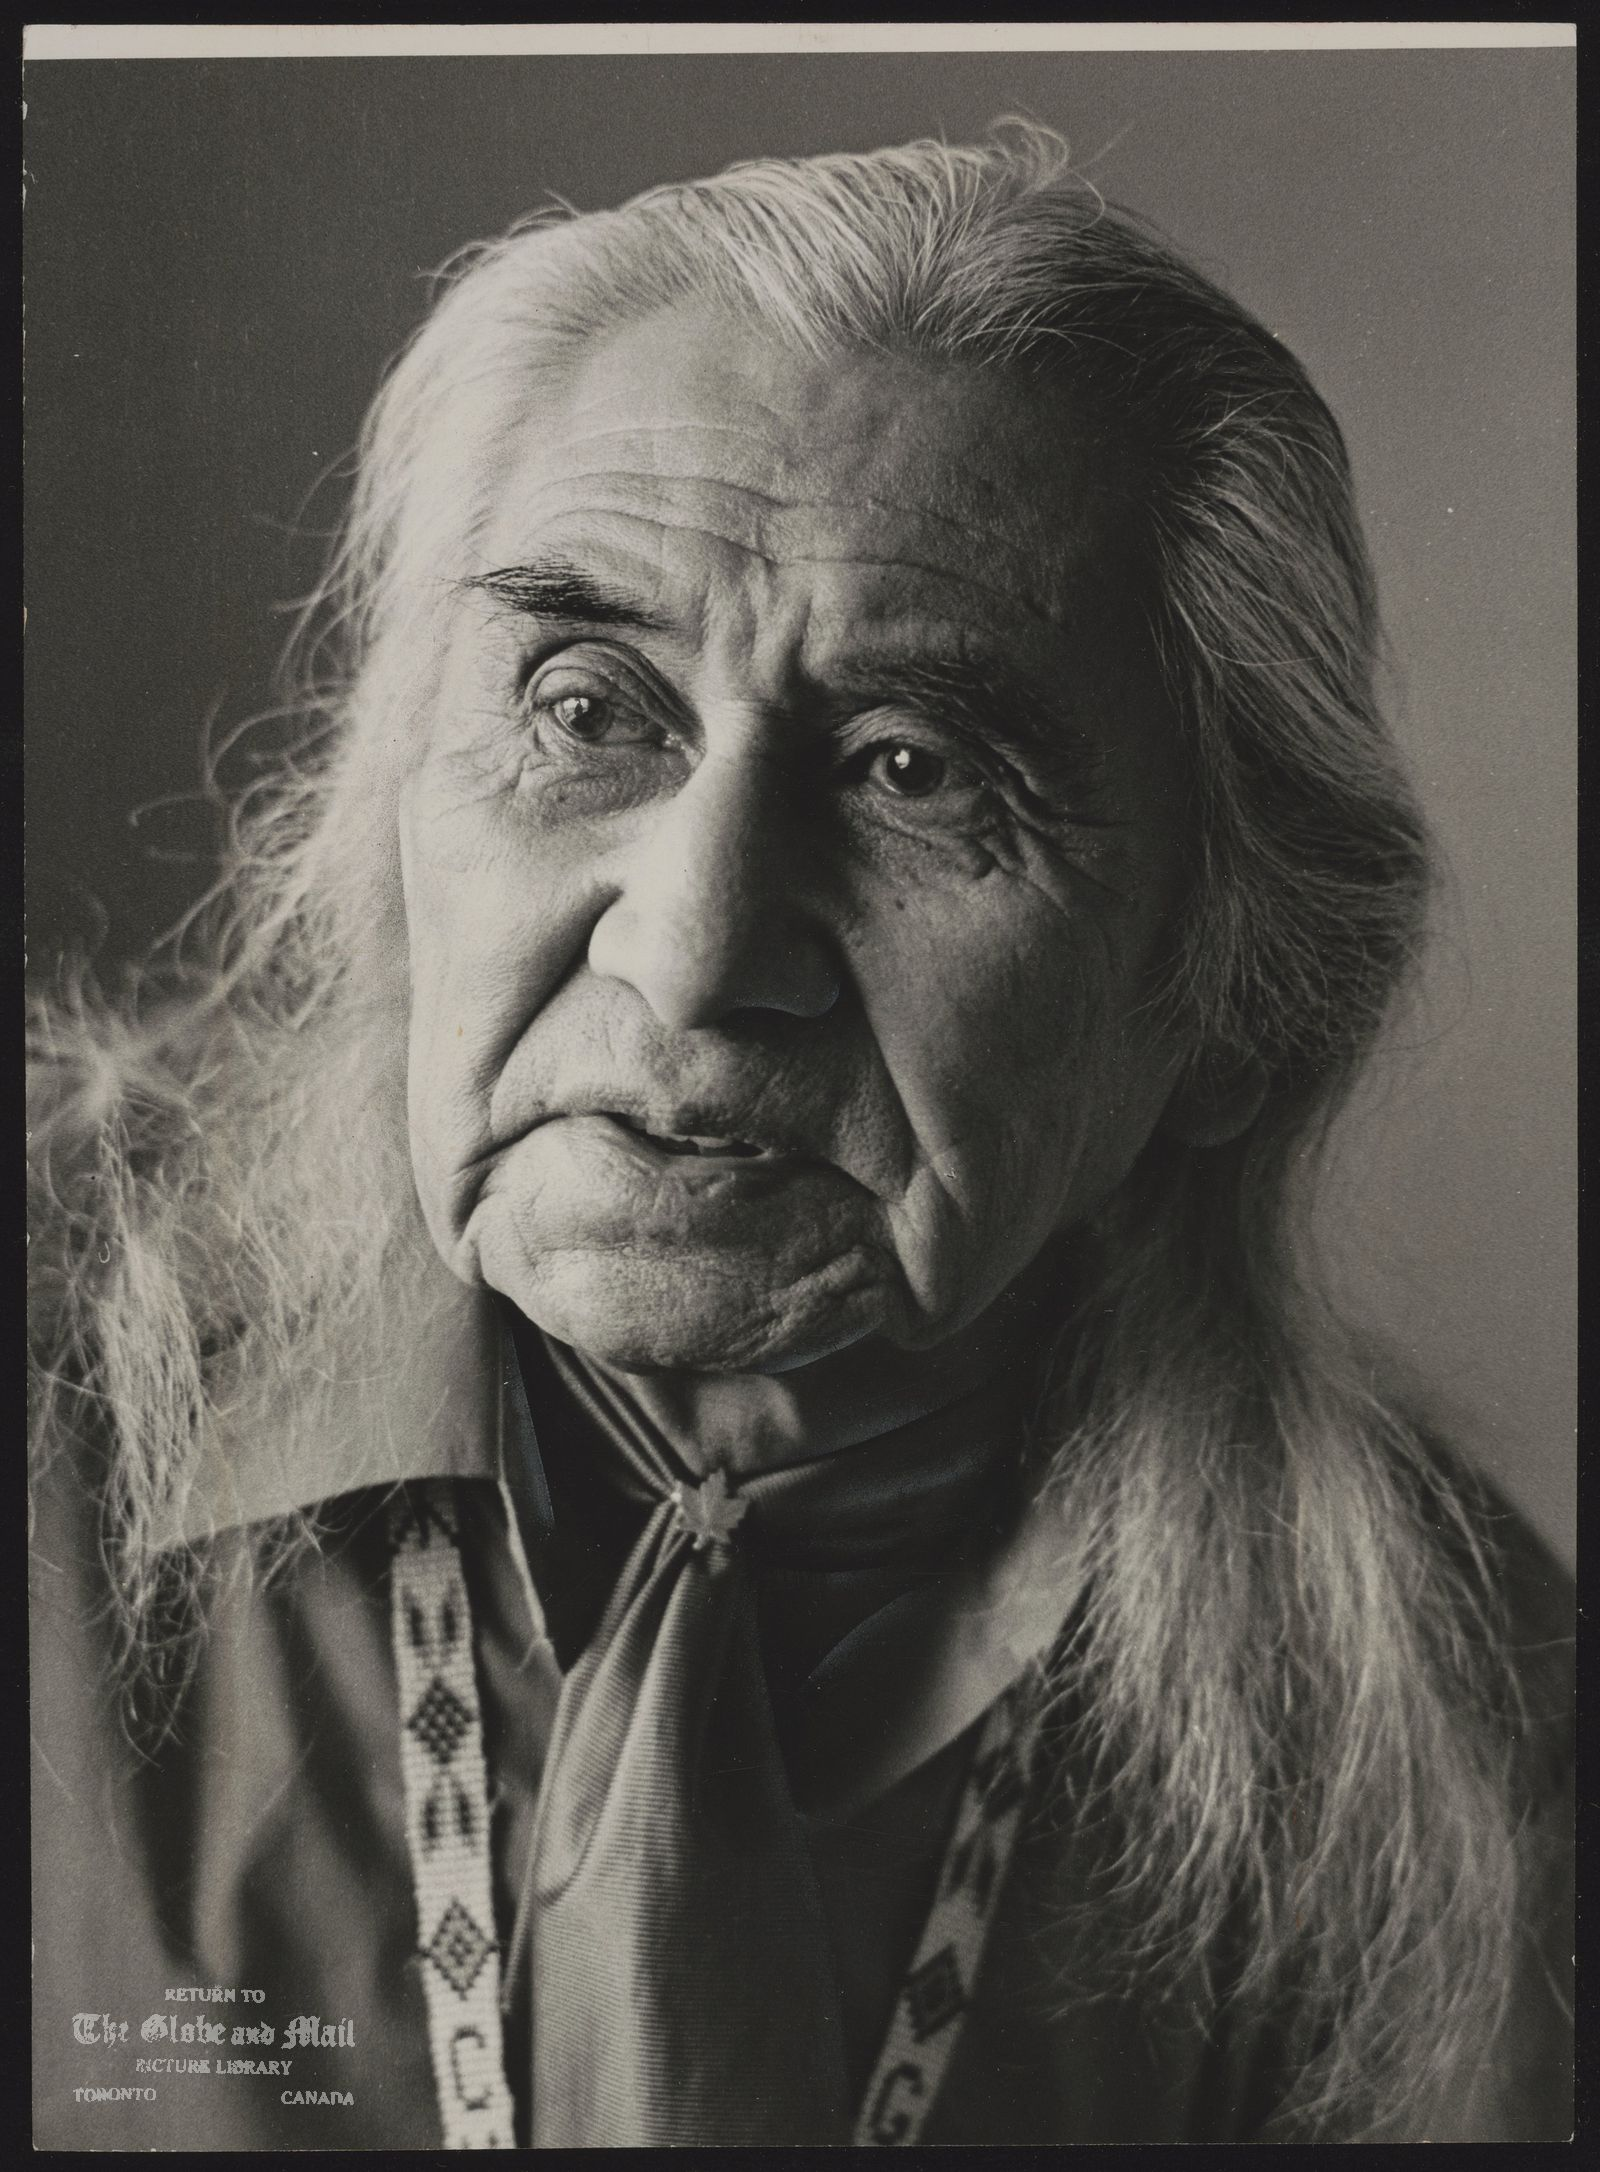 Dan GEORGE Vancover. Indian Chief, actor Chief George: truth in unreal world. Chief Dan George is 72 magnificent years old and possessed of grace and great grandfatherly style.